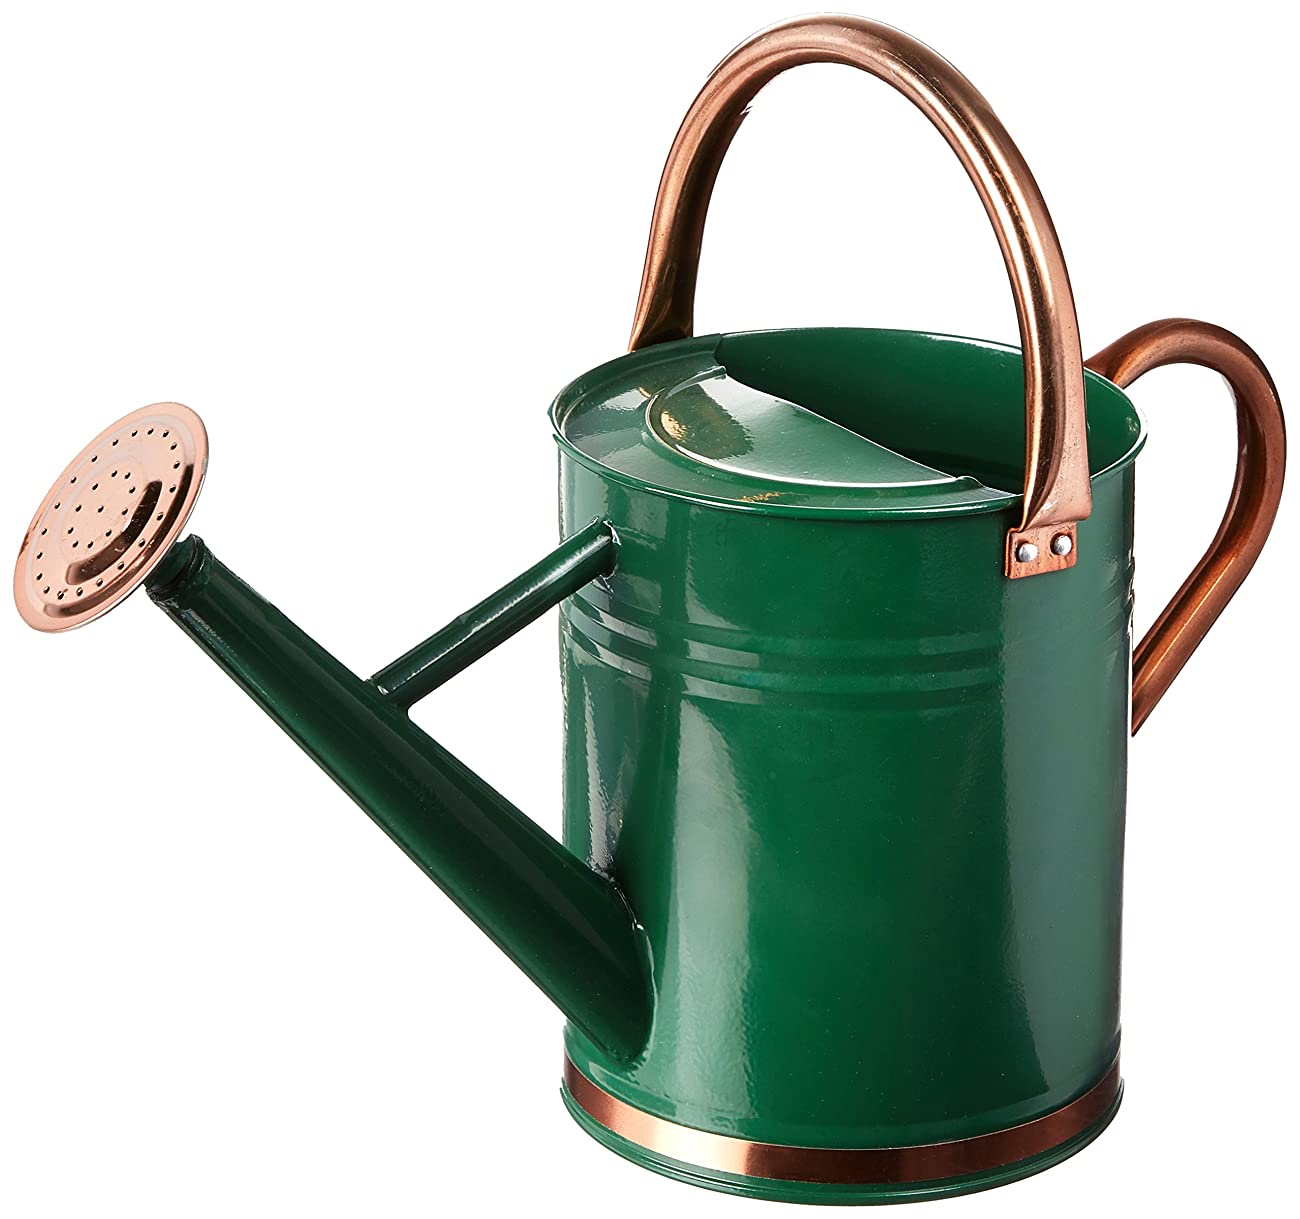 Gardman 8327 Hunter Green Galvanized Steel Watering Can with Copper Accents, 1-Gallon 0